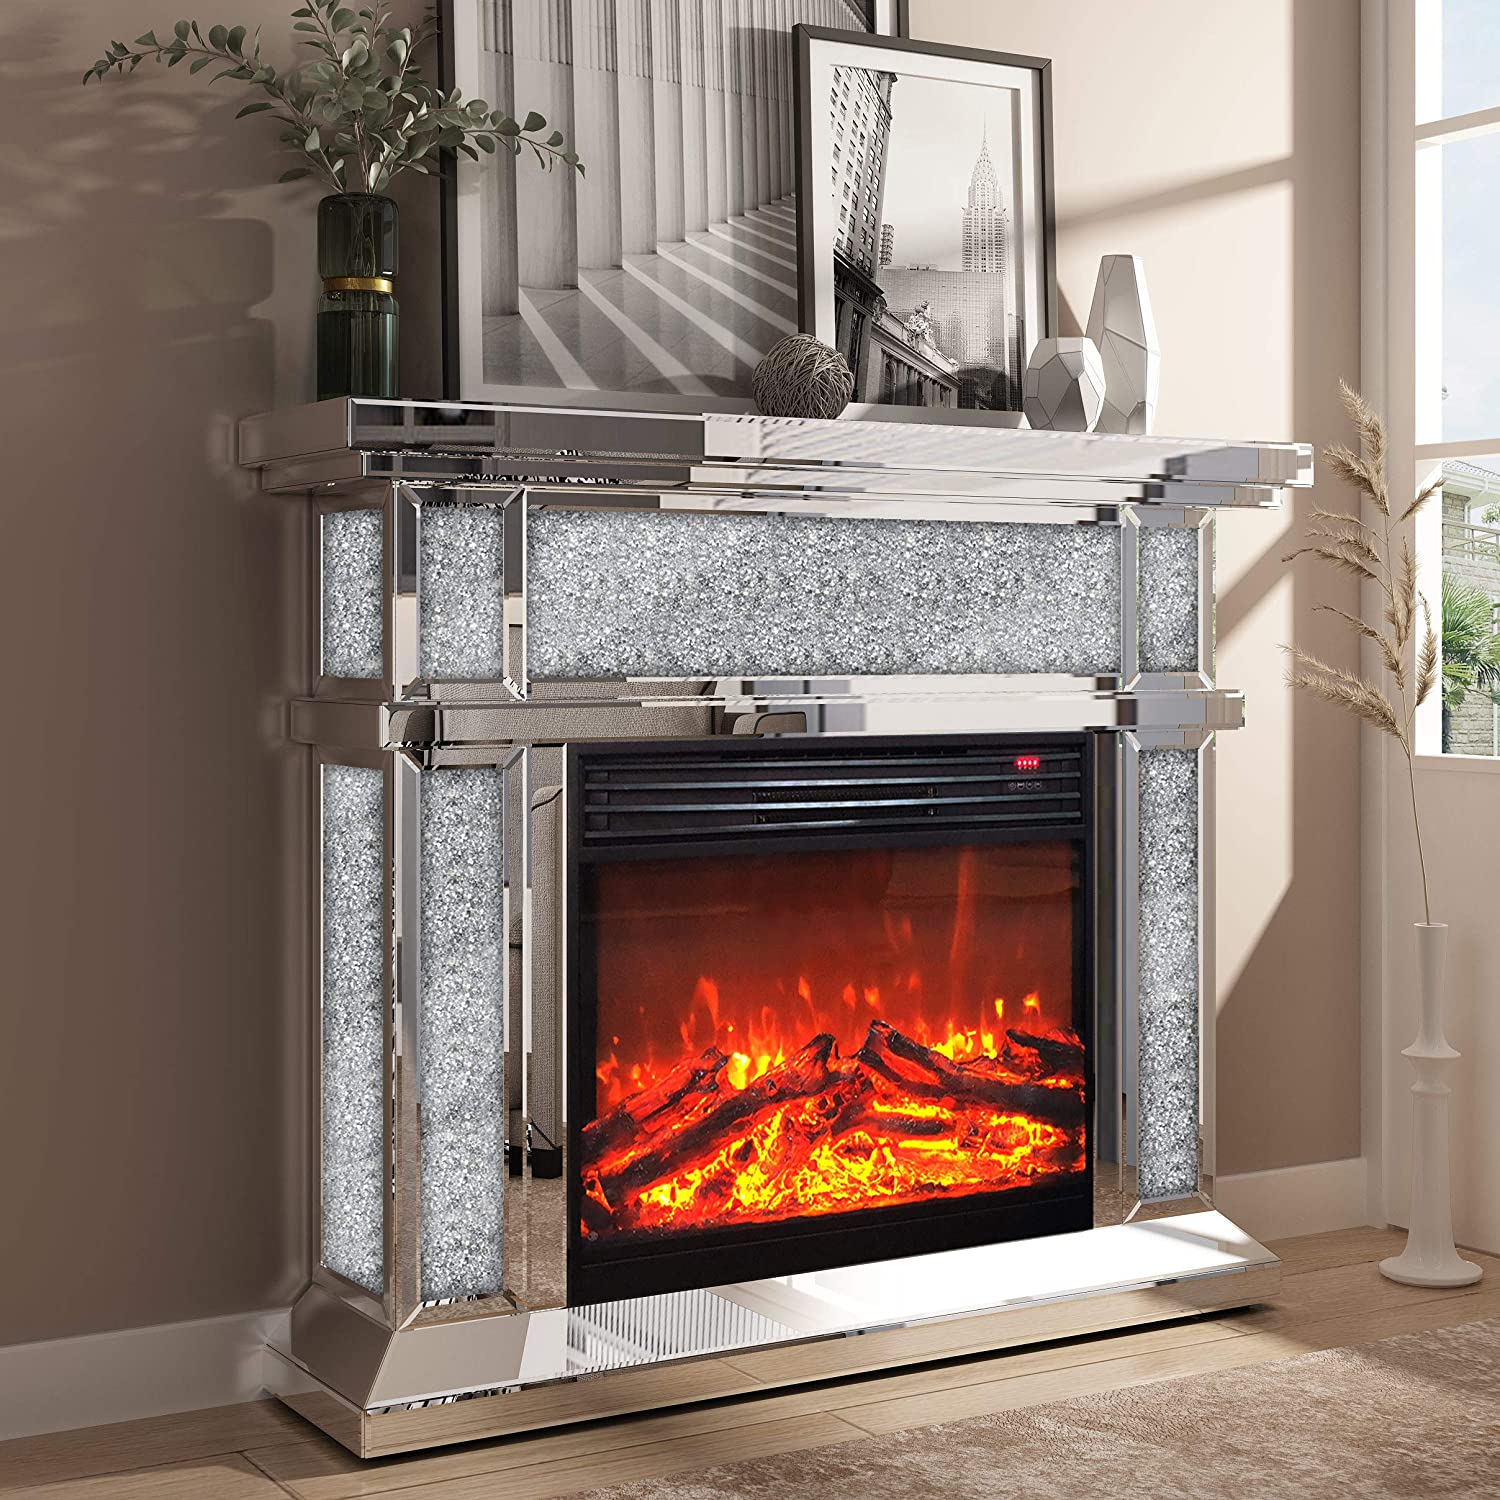 Enene Mirrored Electric Fireplace Fireplace Mantel Freestanding Heater Firebox With Remote Control 3d Flame 750 1500w Home Kitchen